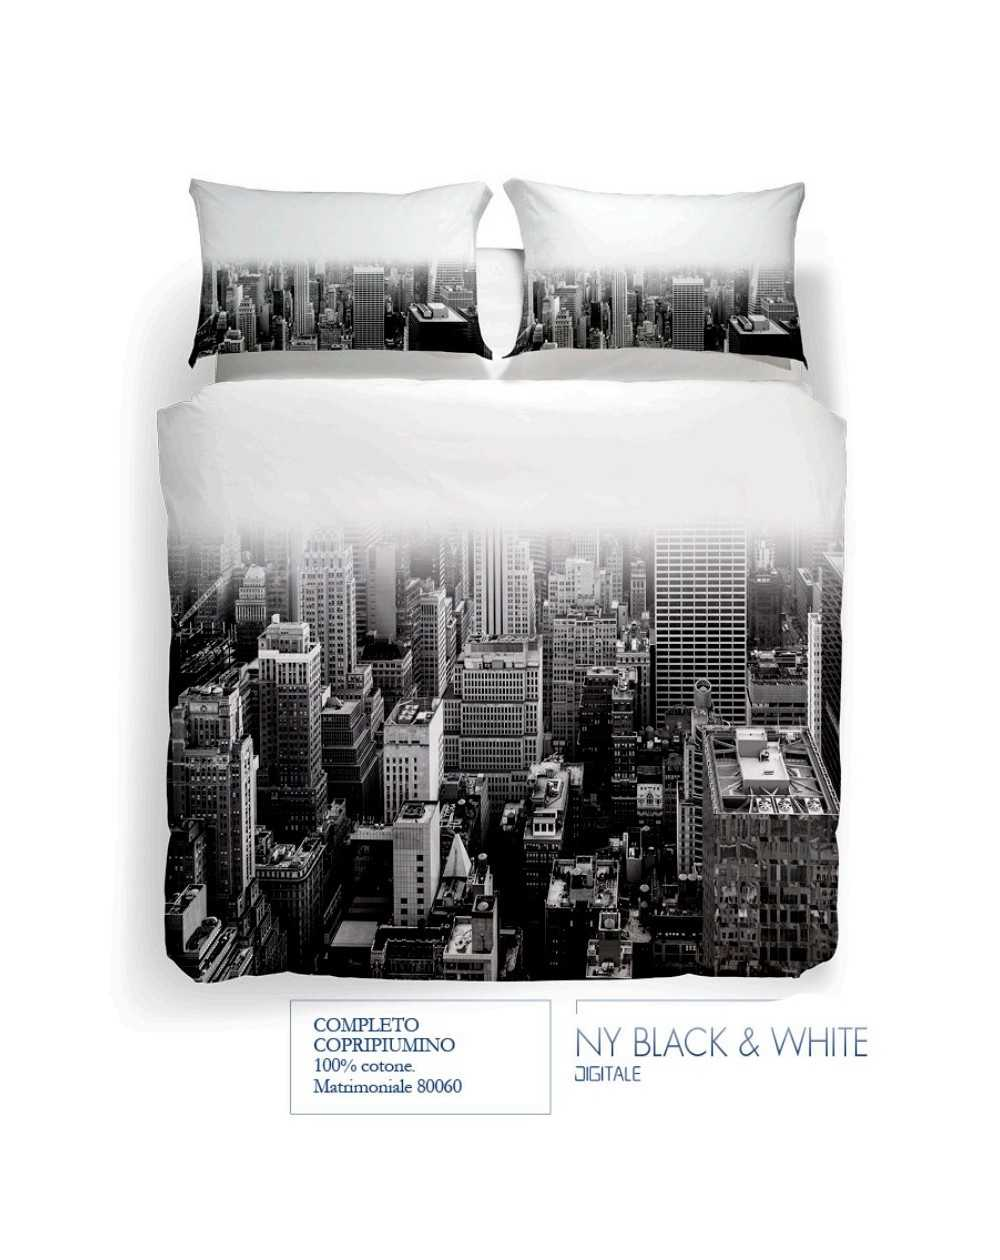 Duvet Set super king size Dubai by Night from Caleffi